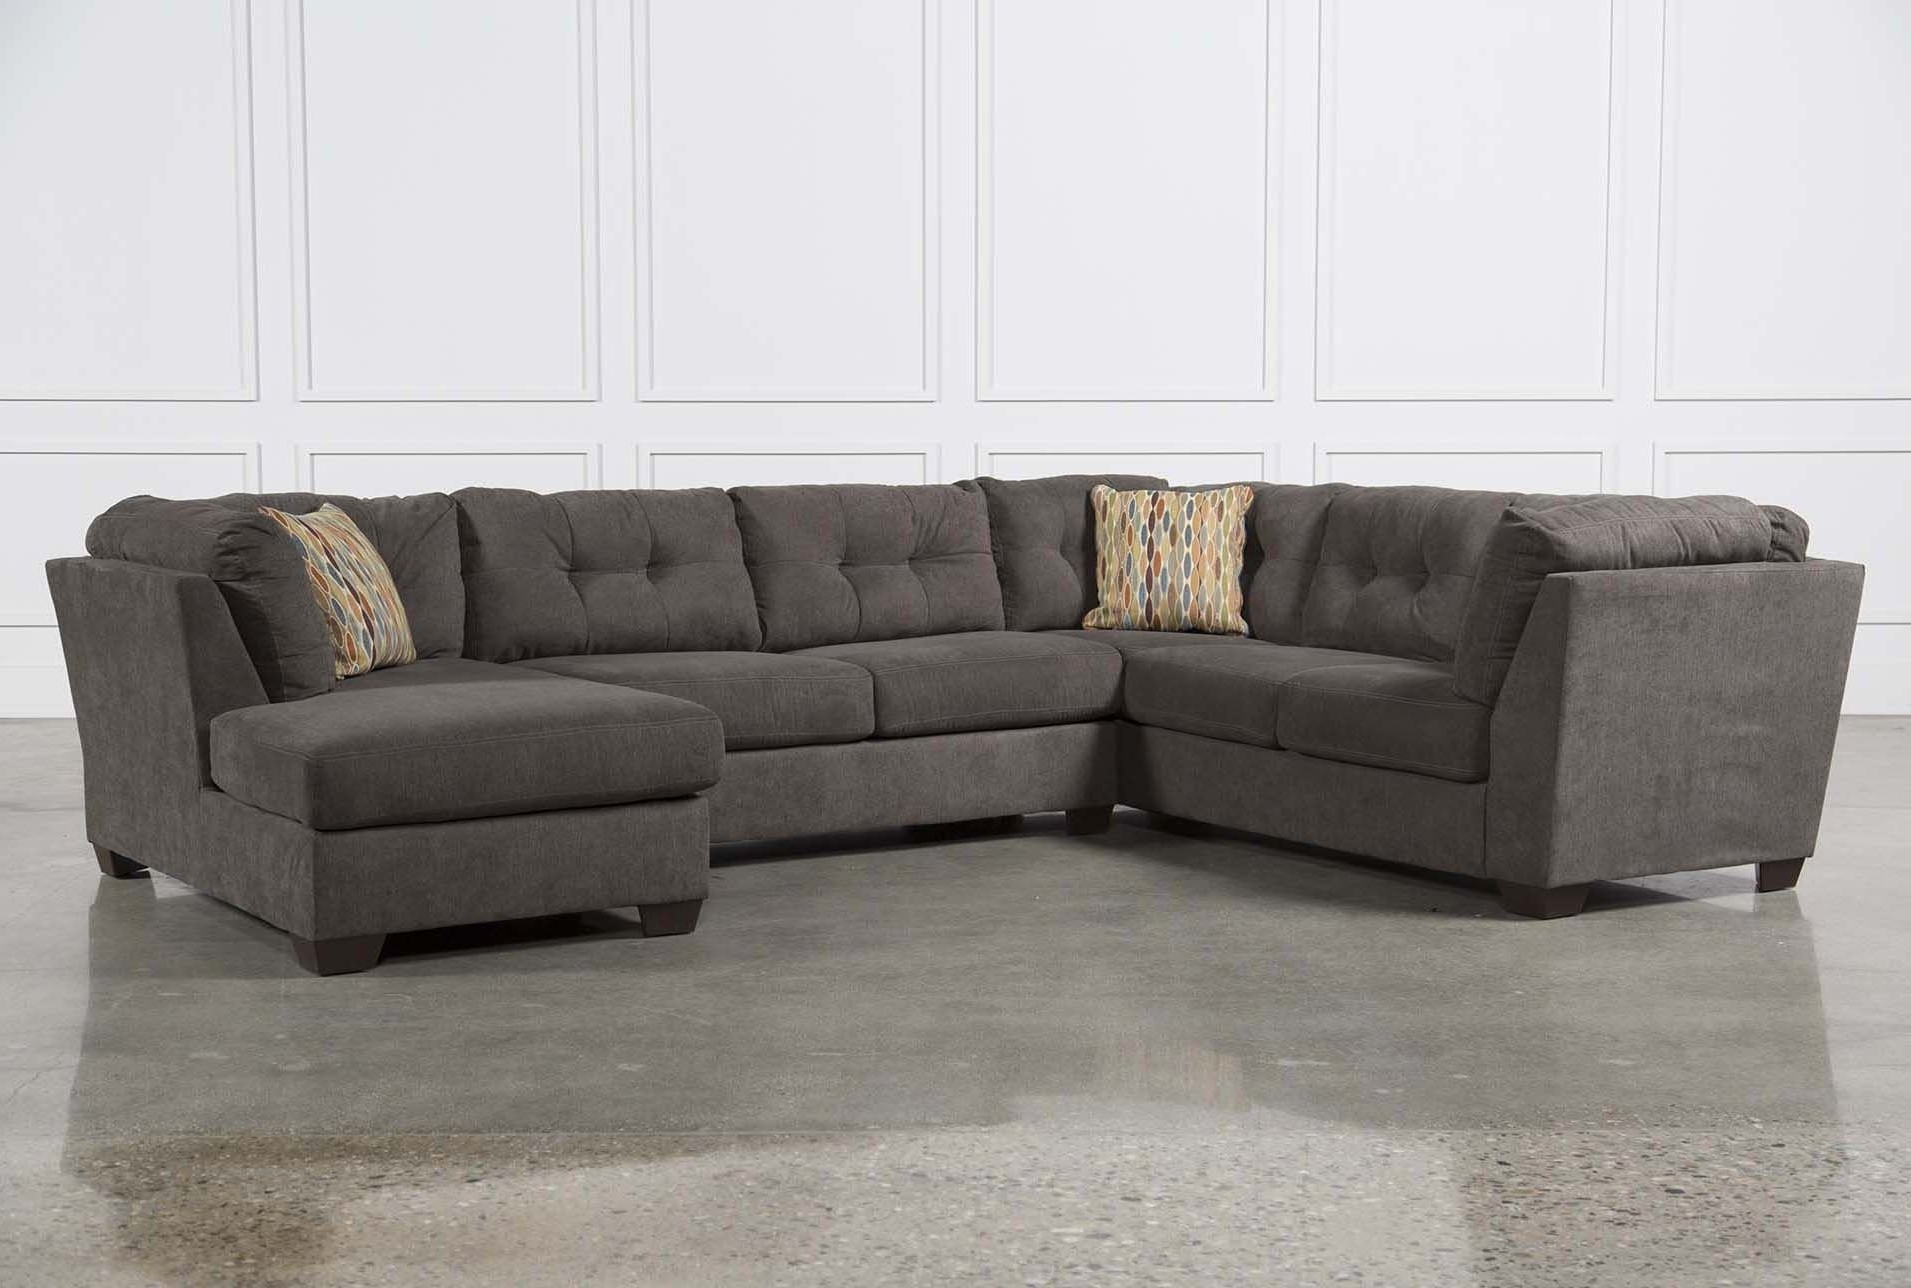 High Quality Sectional Sofas Intended For Popular 3 Seat Sectional Sofa – Home Design Ideas And Pictures (View 14 of 20)